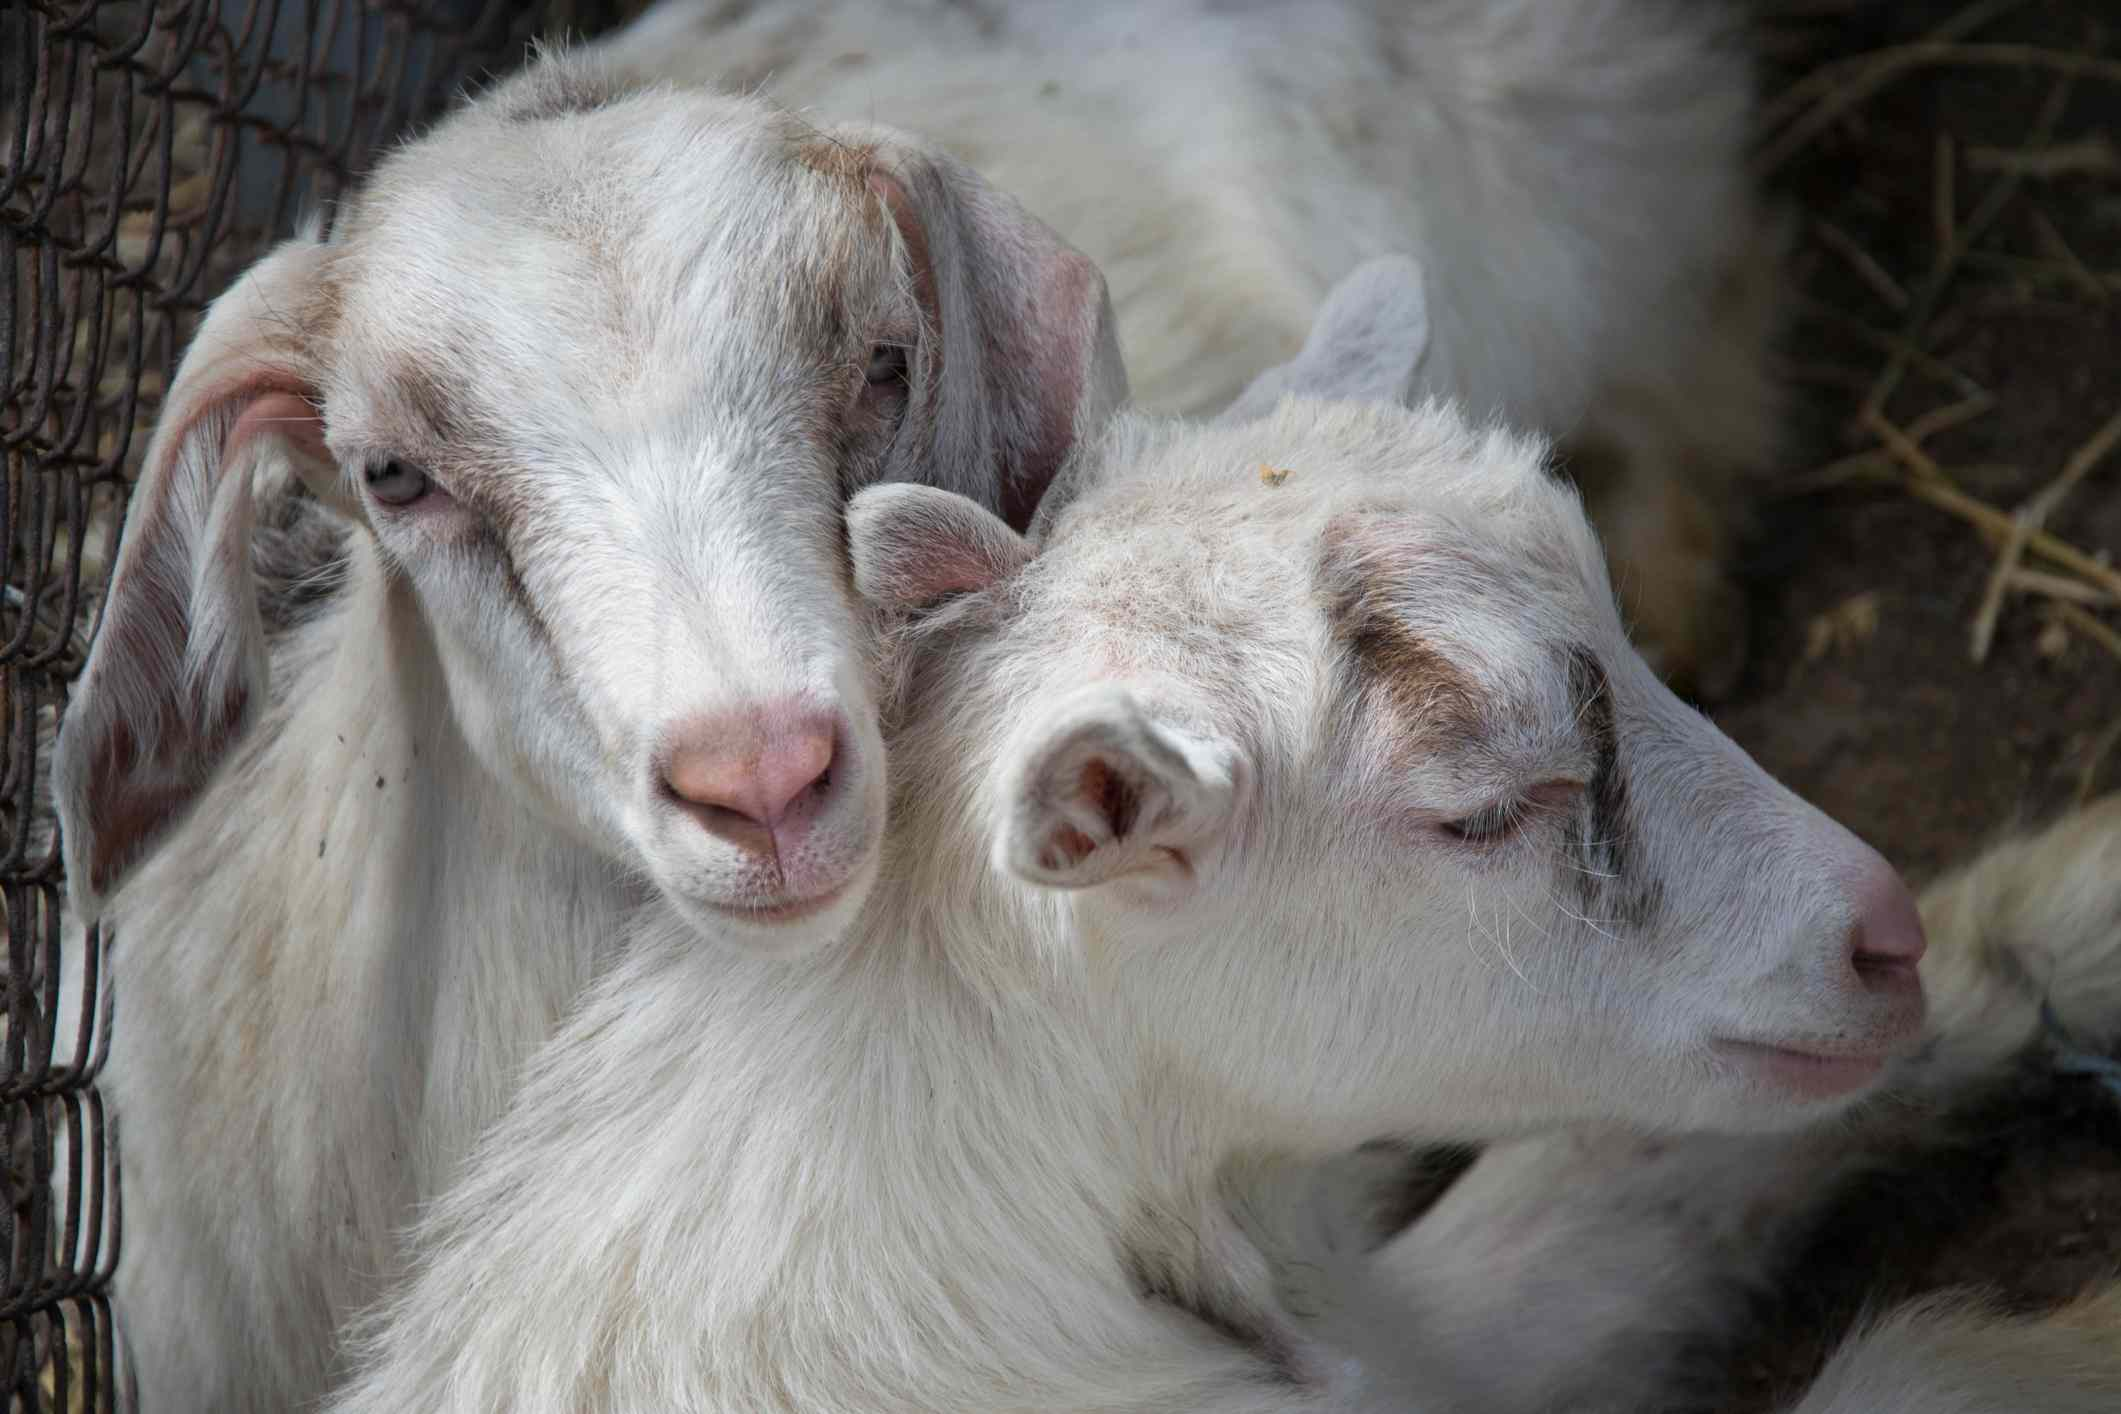 Two goats nuzzling next to a fence